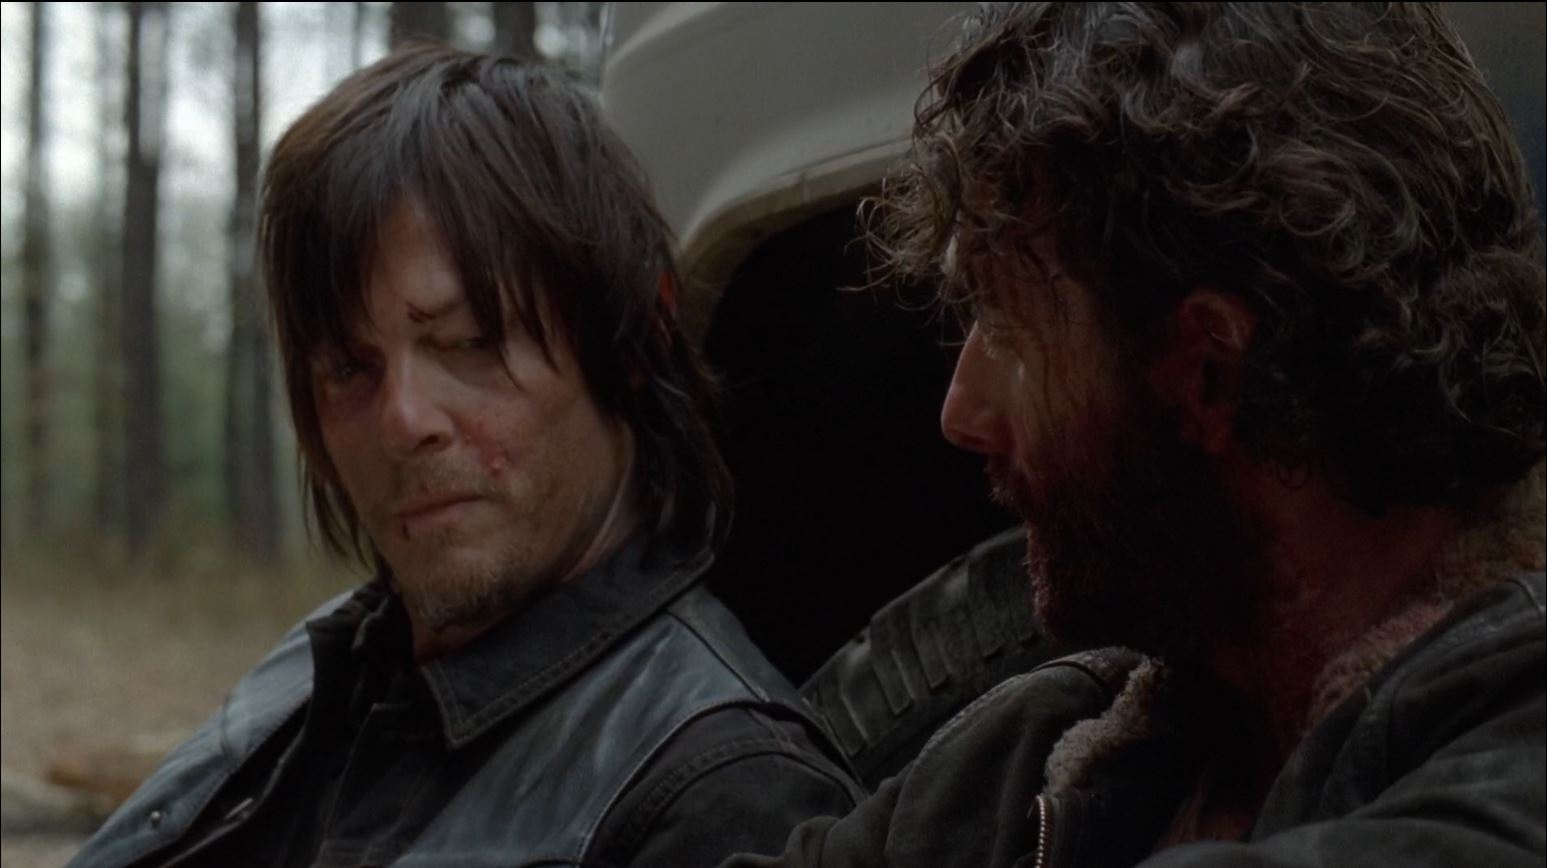 The Walking Dead season 4 finale -Daryl and Rick talk about the attack